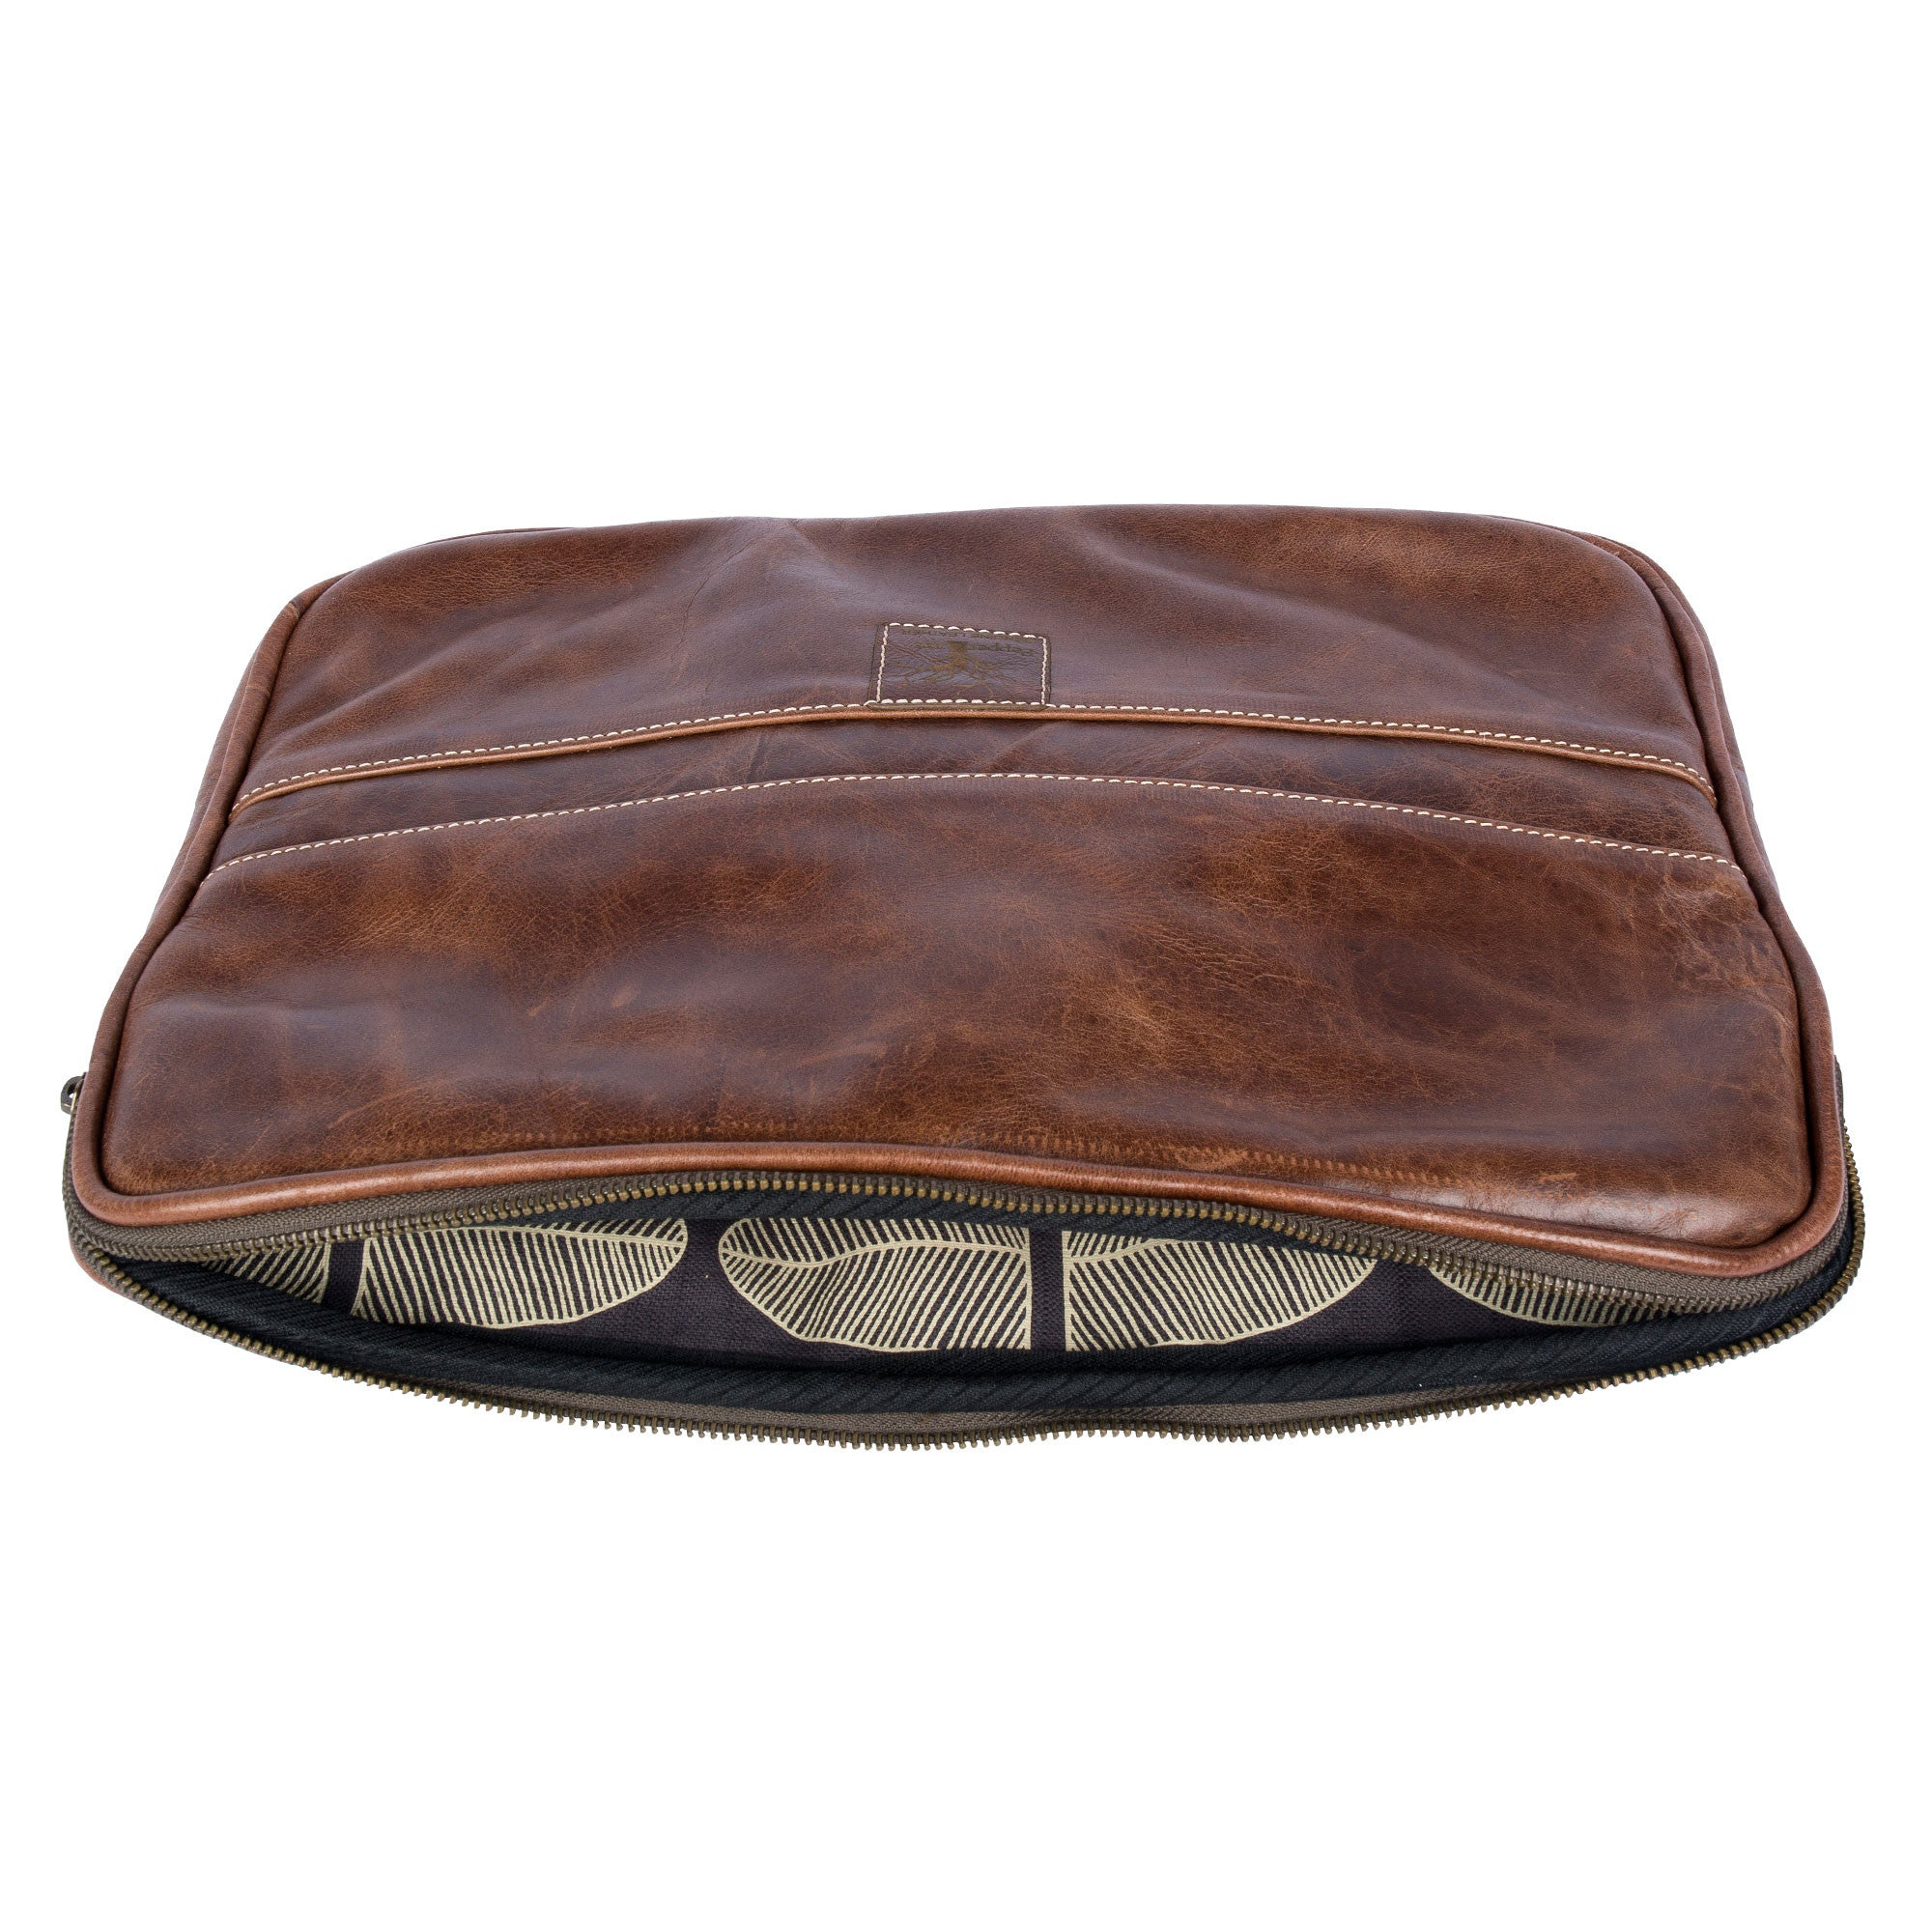 Men's leather laptop cover